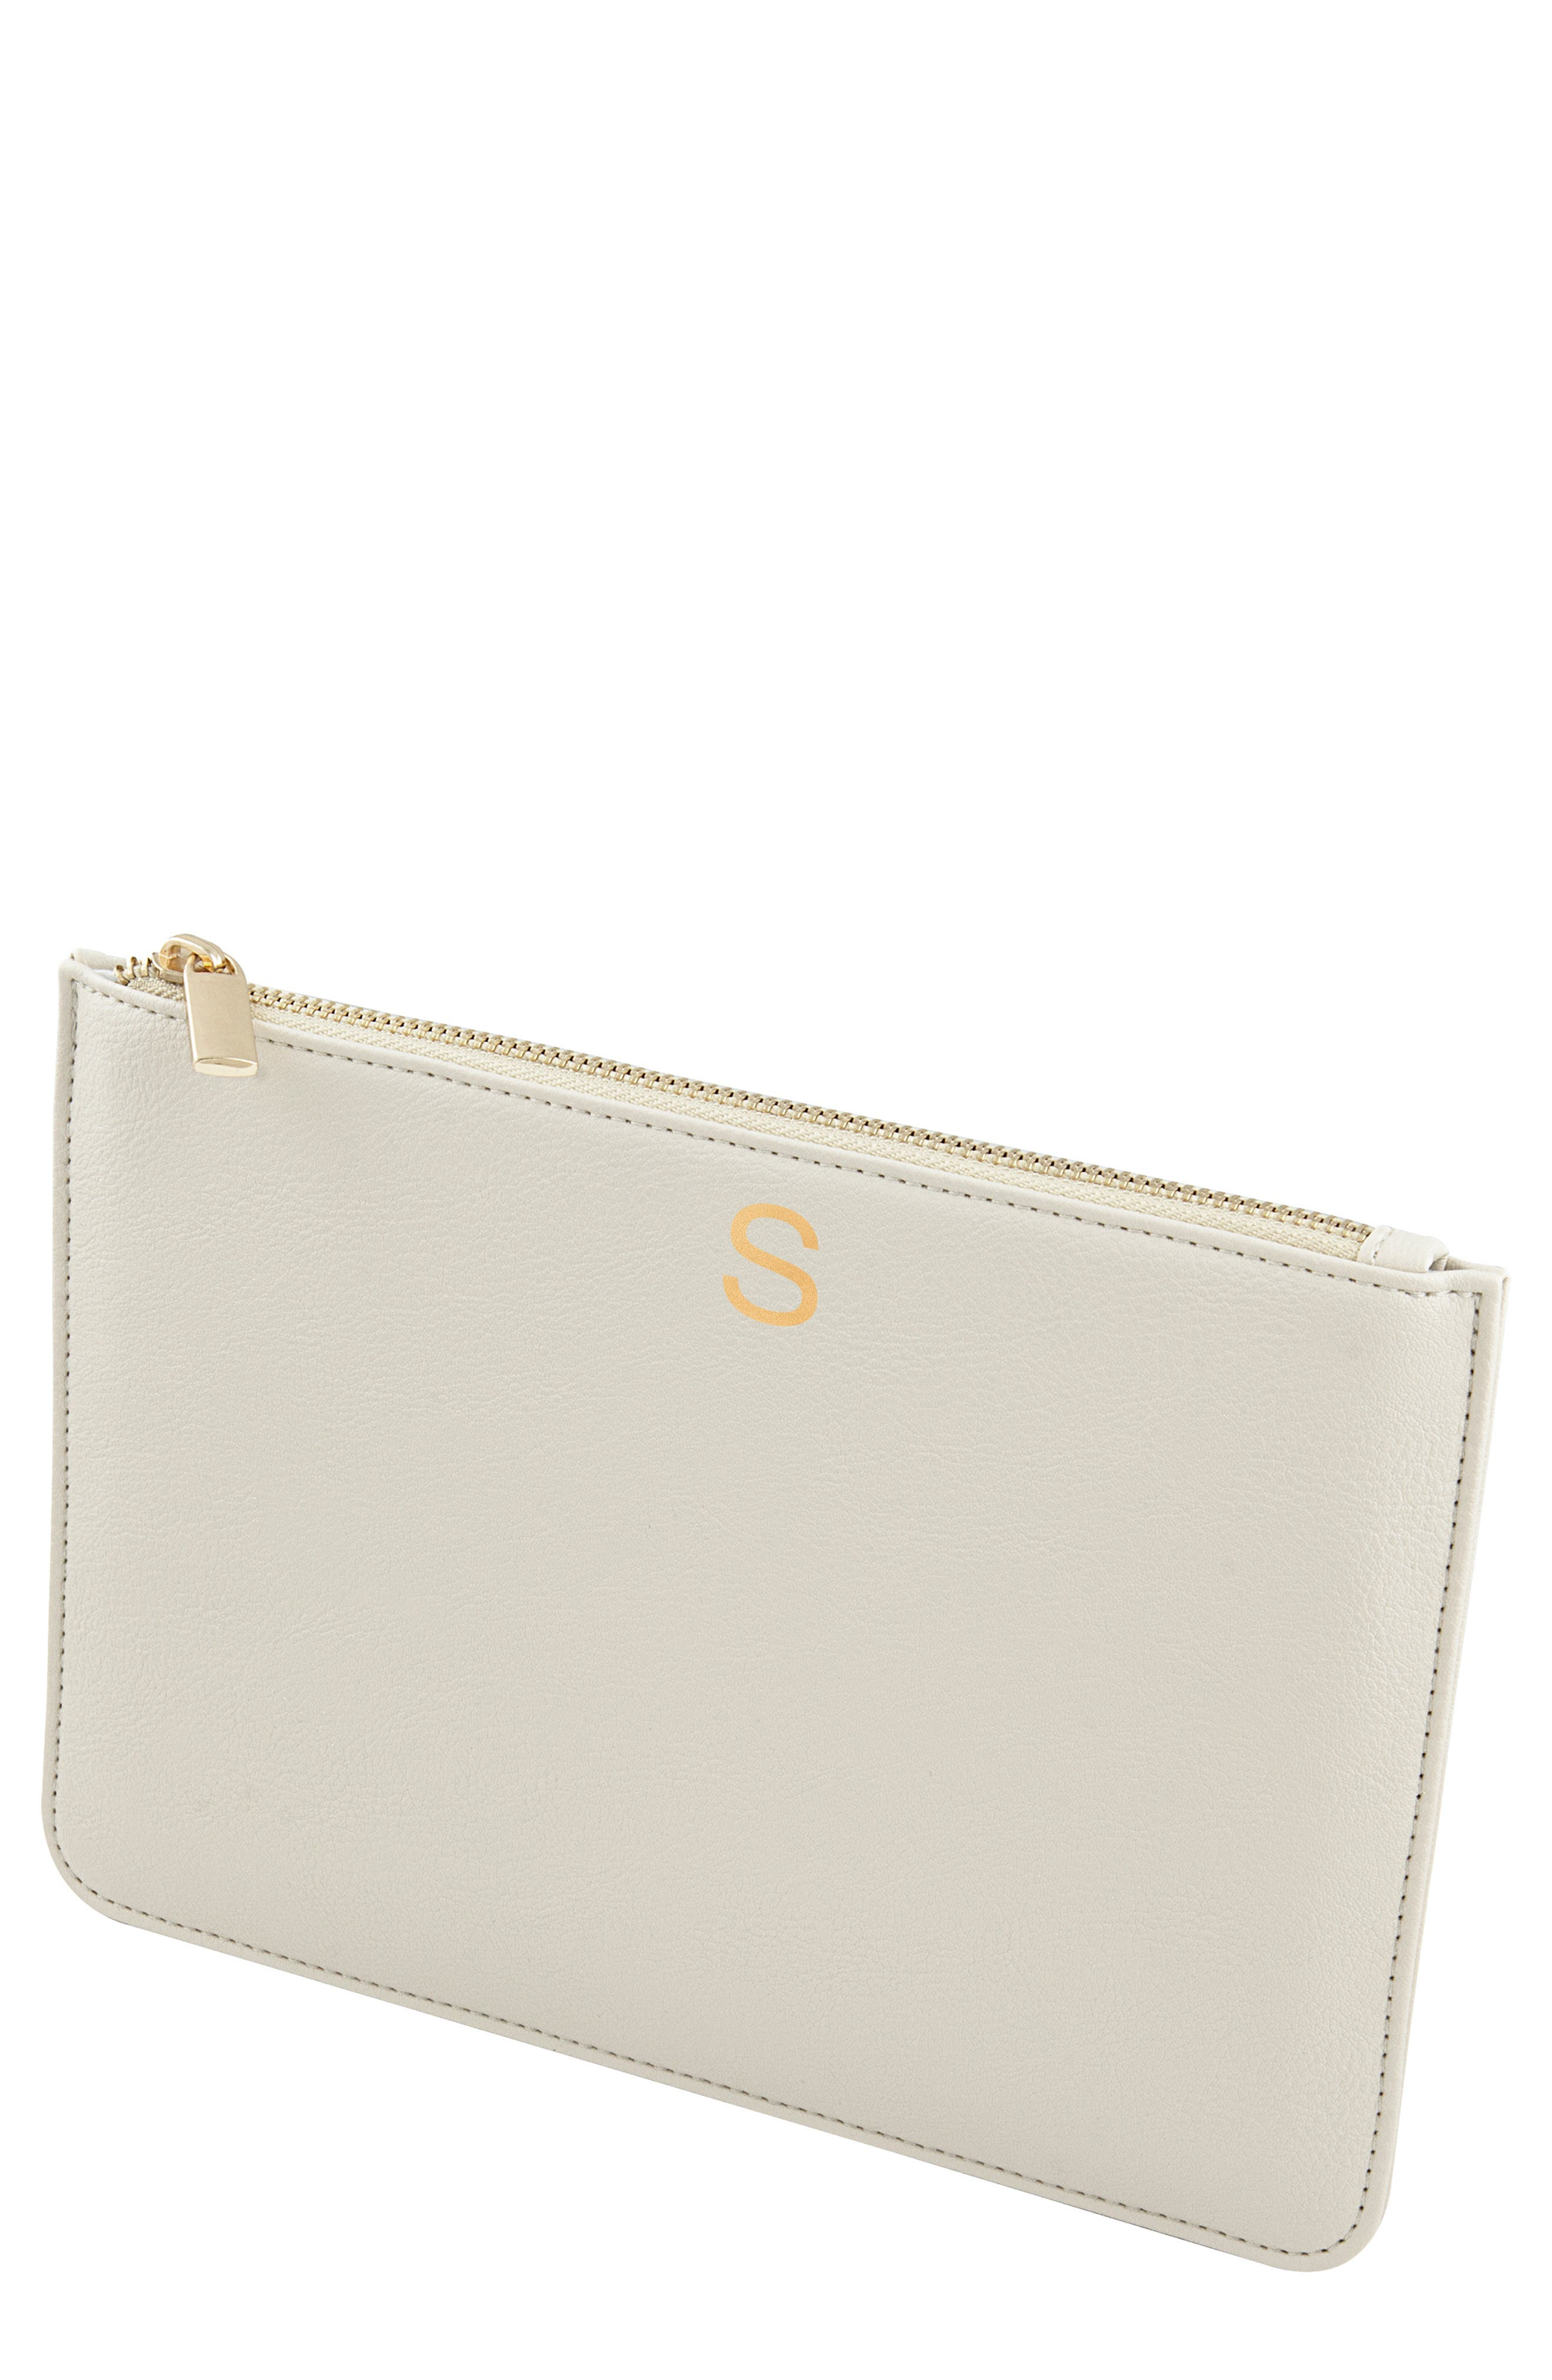 Personalized Faux Leather Pouch,                             Main thumbnail 1, color,                             PEBBLED GREY S